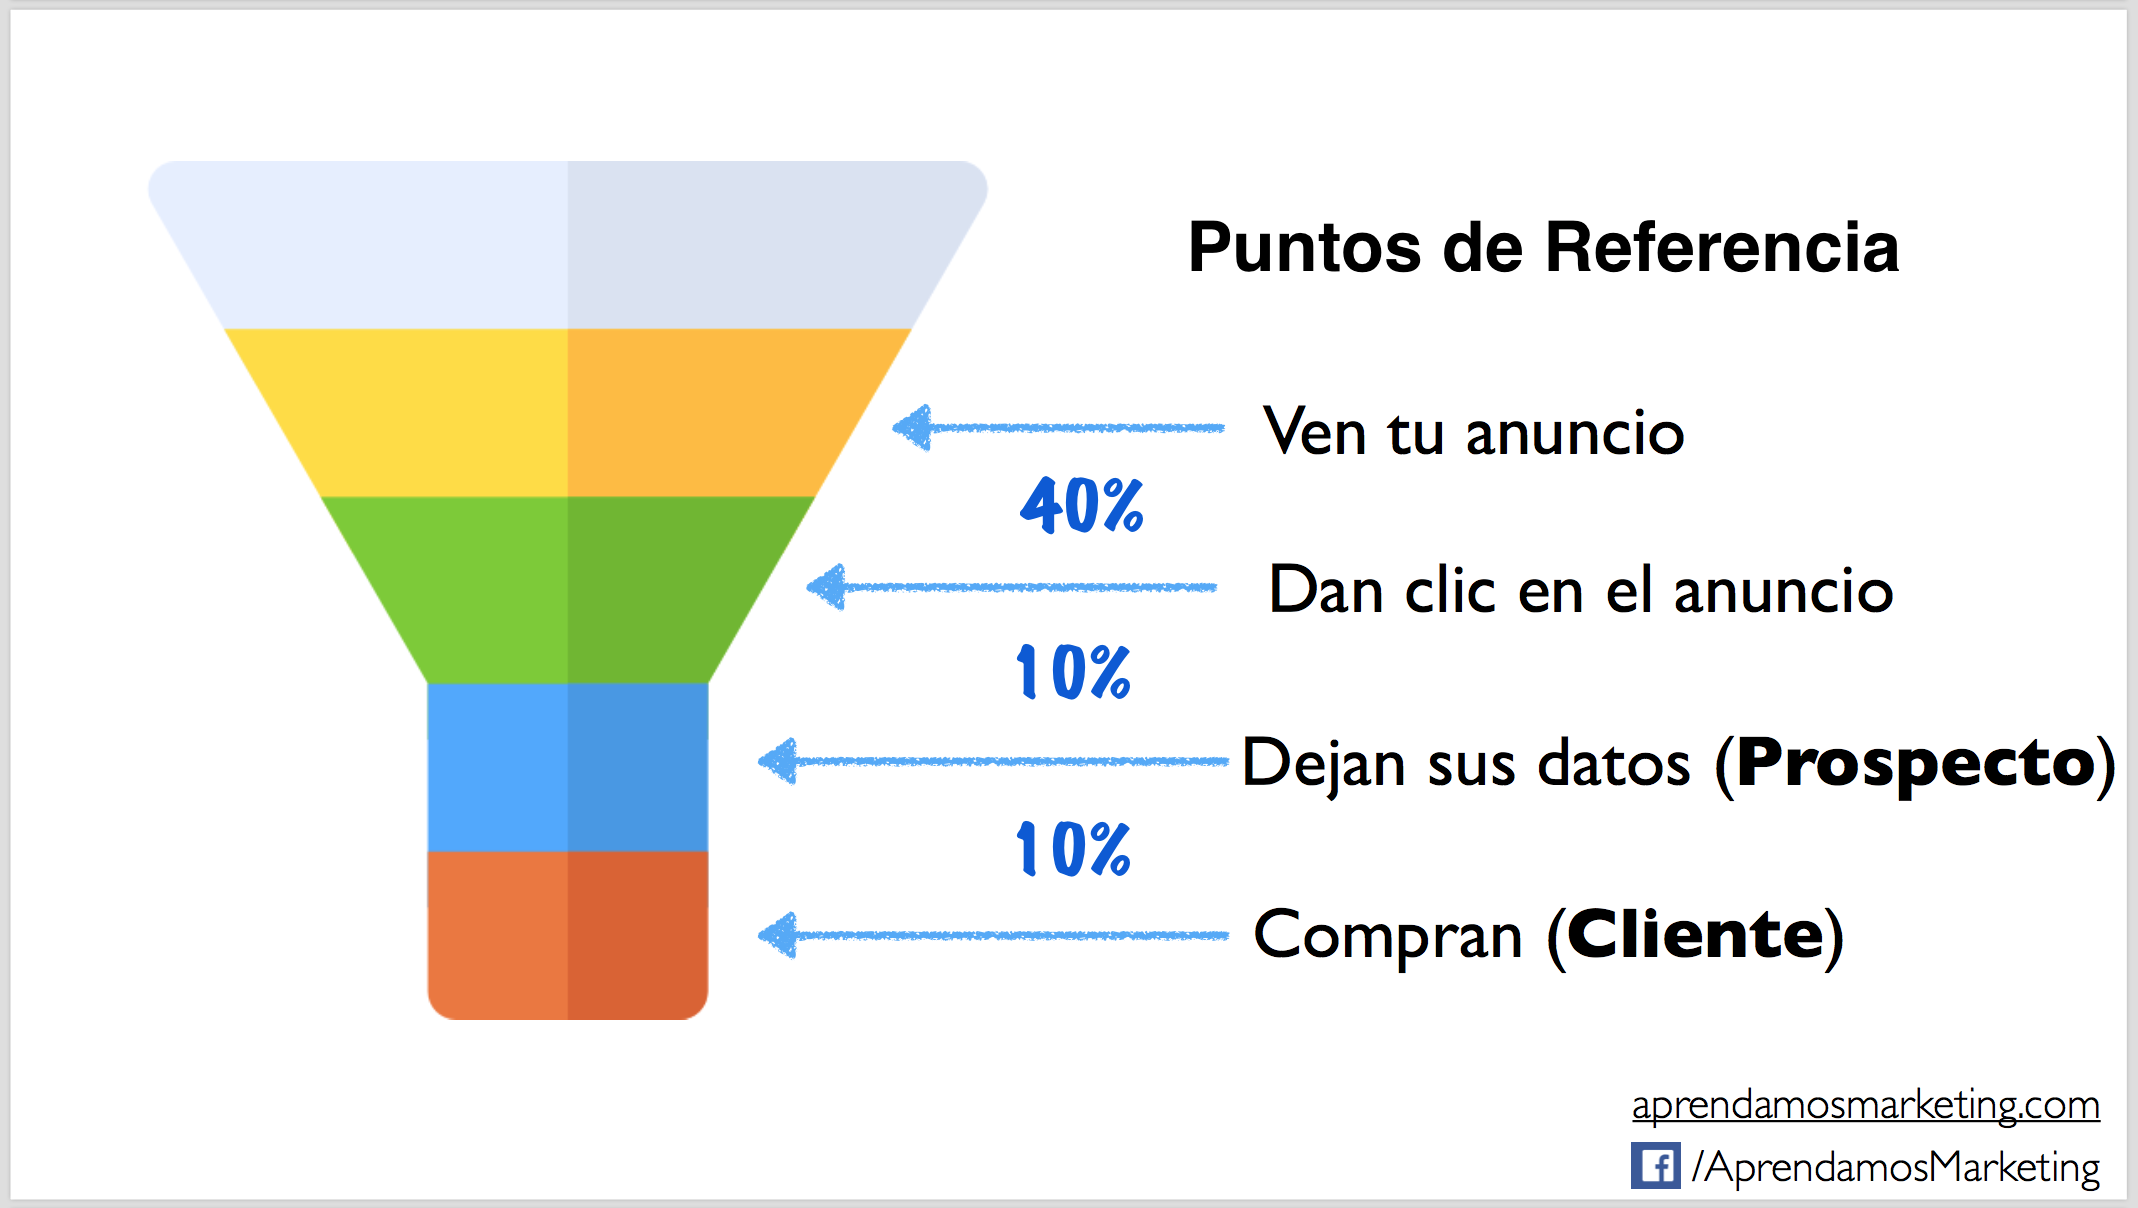 Ejemplo puntos de referencia en un embudo de ventas - Aprendamos Marketing